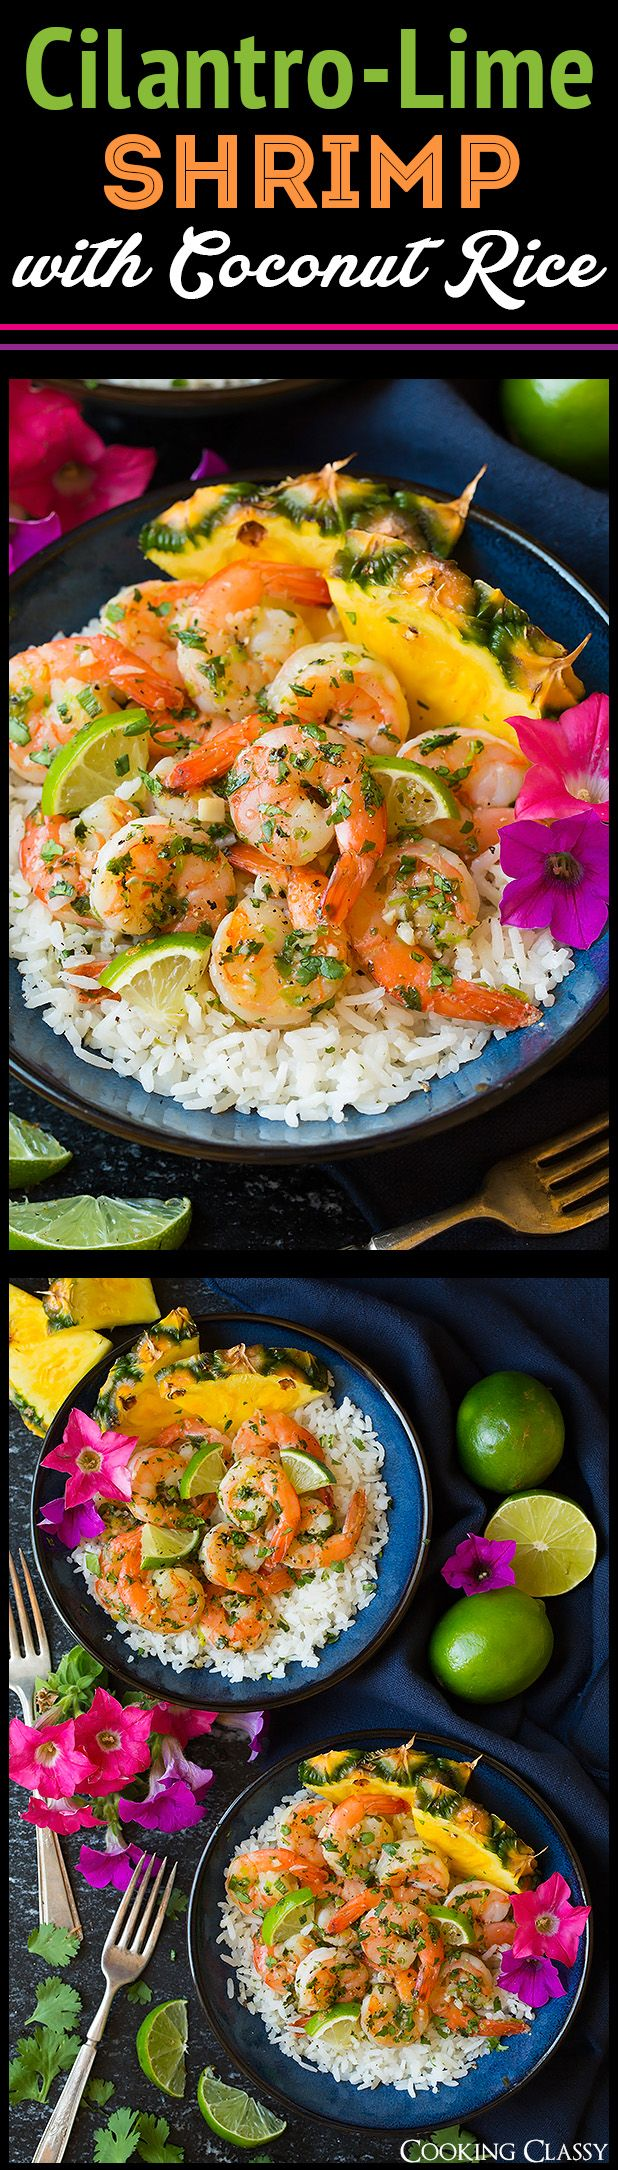 Cilantro Lime Shrimp with Coconut Rice - such a delicious, flavorful, EASY meal. Will definitely make this again and again.